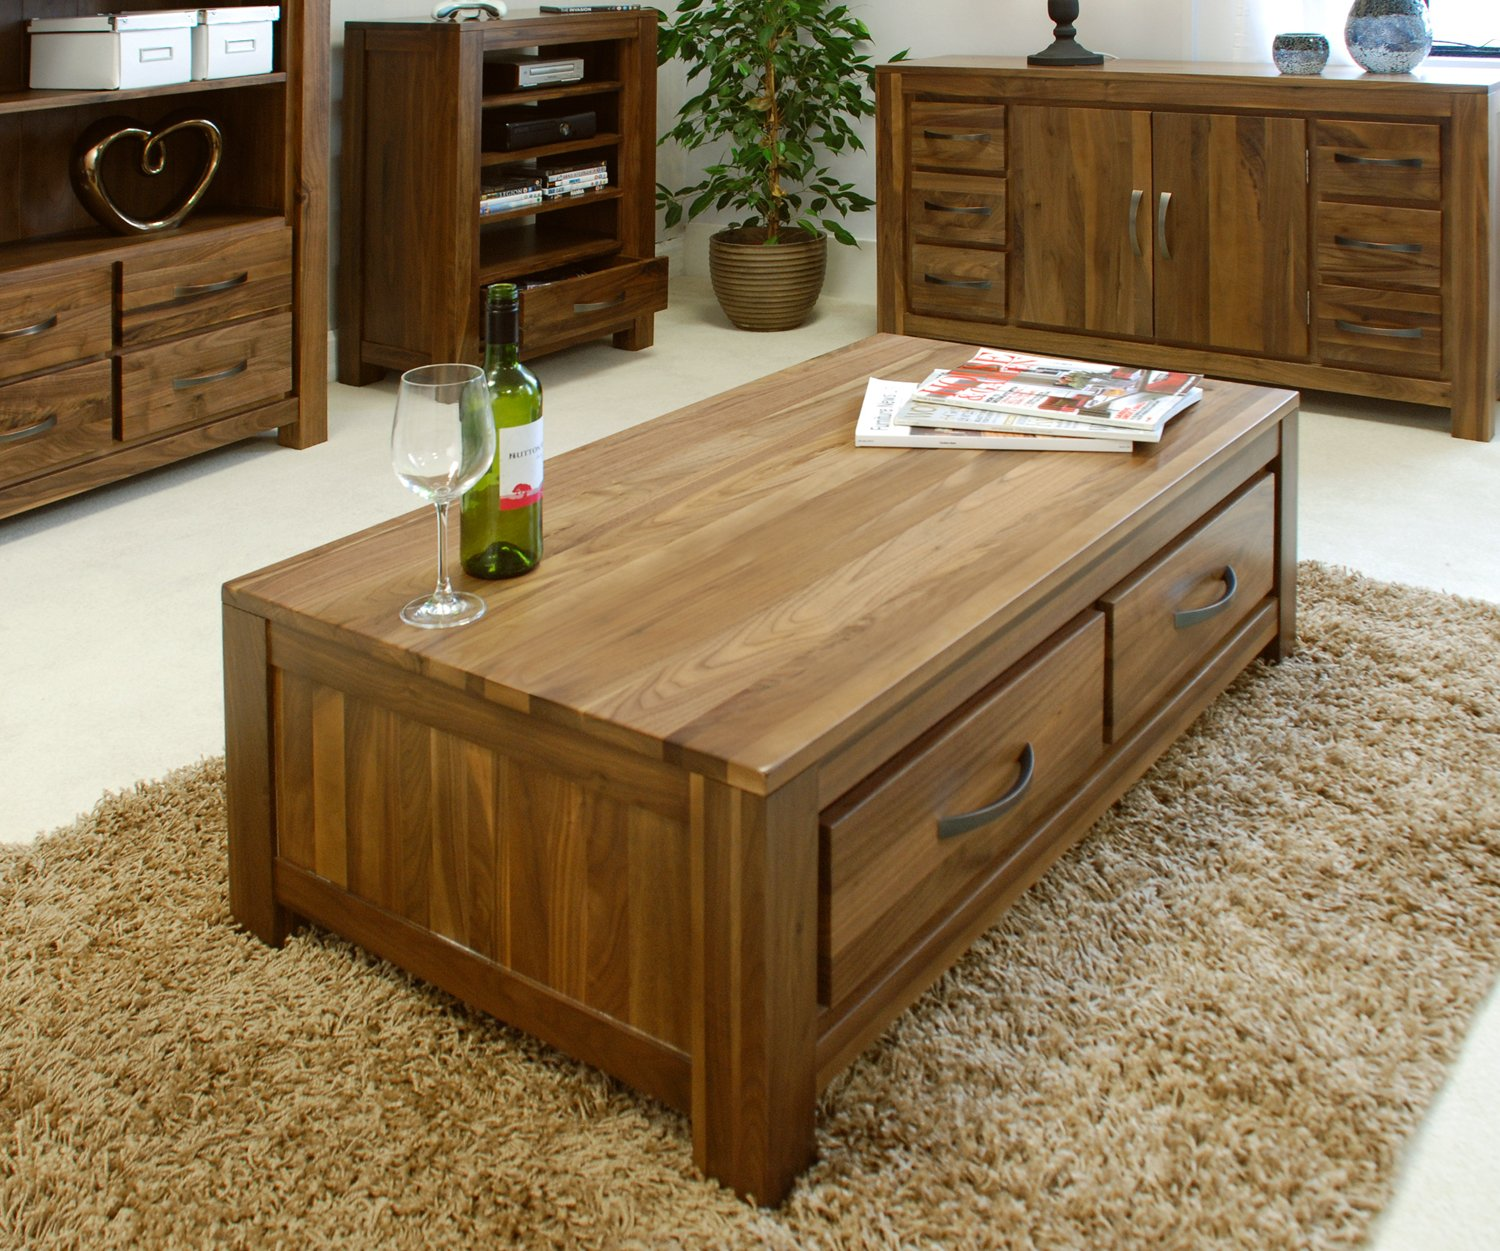 Baumhaus mayan walnut low four drawer coffee table amazon baumhaus mayan walnut low four drawer coffee table amazon kitchen home geotapseo Image collections